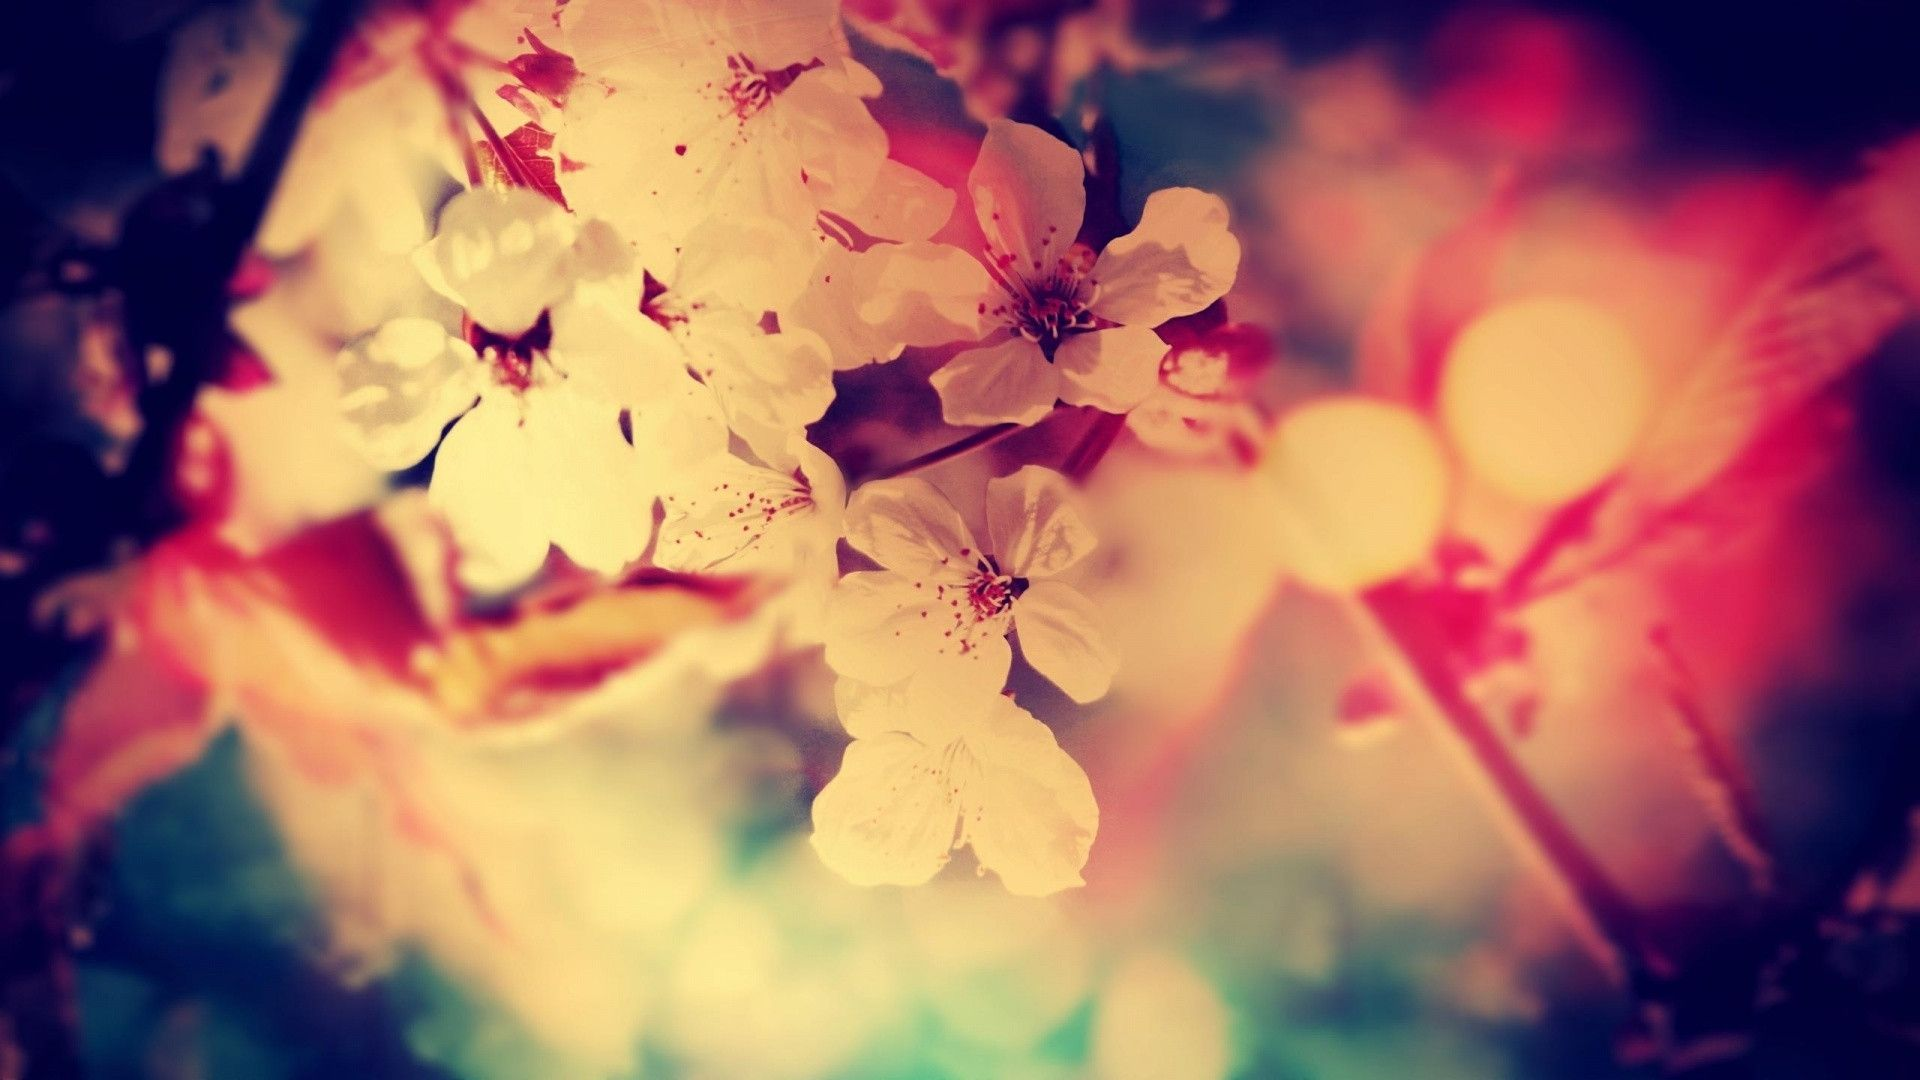 Source From httpwallpapercavecompretty wallpaper for computer 1920x1080